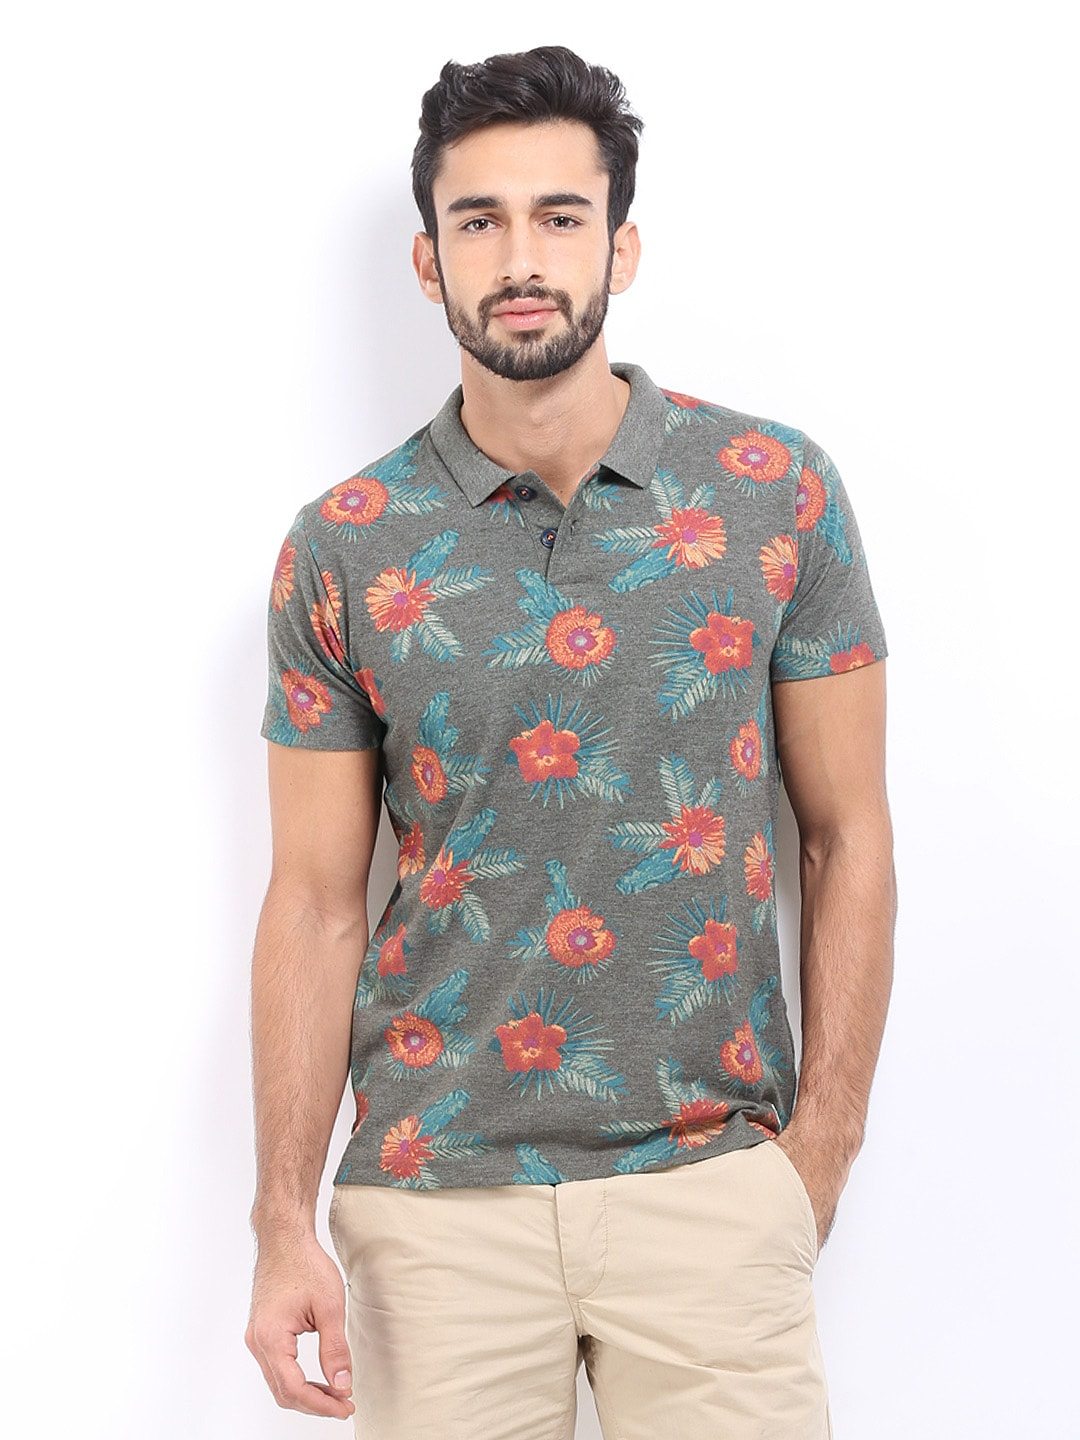 Jack and jones style code 1572864009 for Polo t shirts india